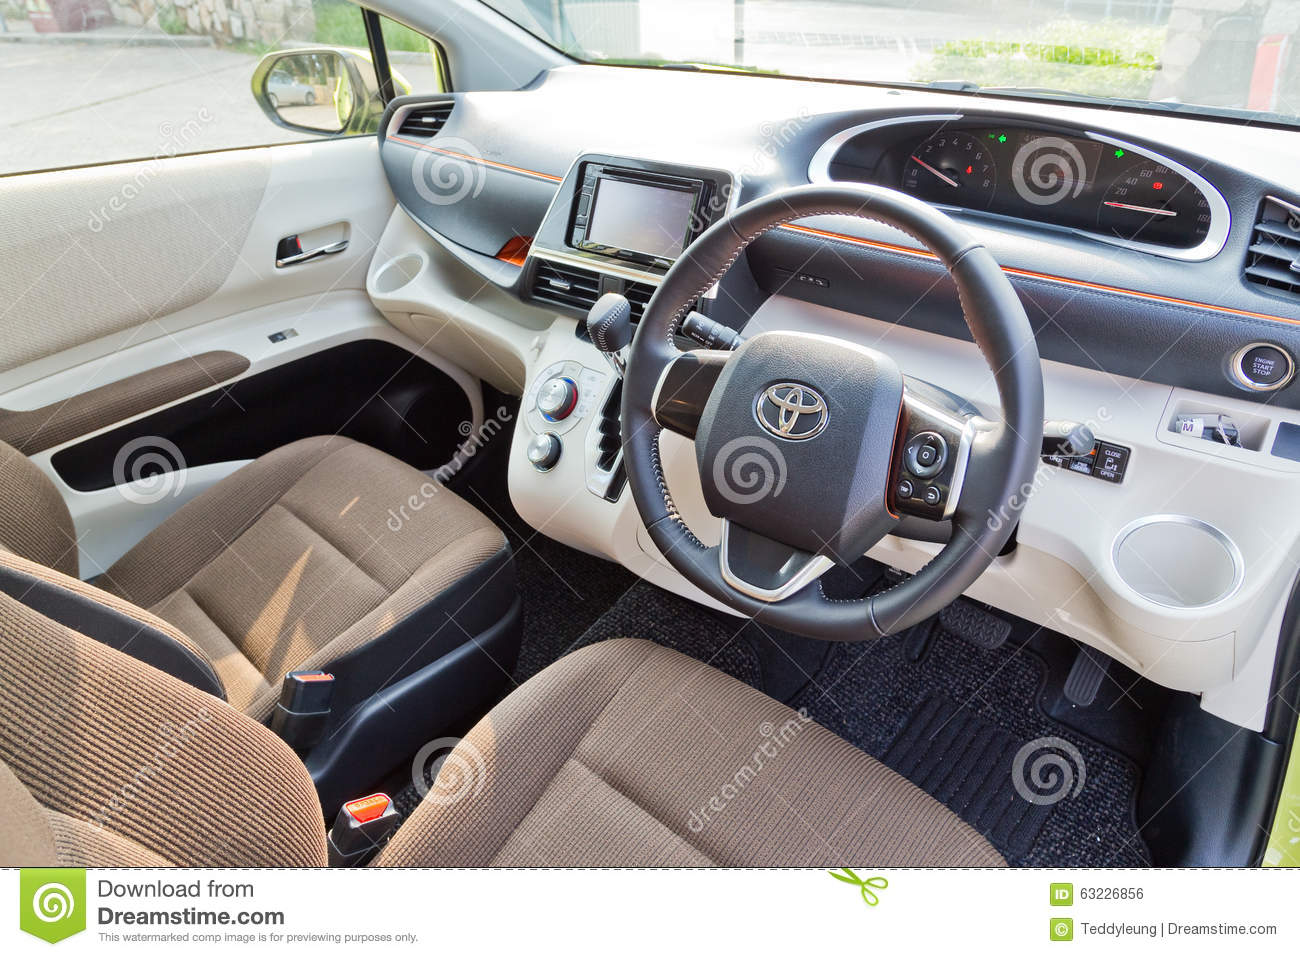 Nissan Stellt Elektroauto Mit Neuem Antriebssystem E Power Vor together with Editorial Photo Toyota Sienta Interior Hong Kong China Aug Aug Hong Kong Image63226856 in addition Watch likewise Pay Per Click moreover 64911927. on hybrid engine animation